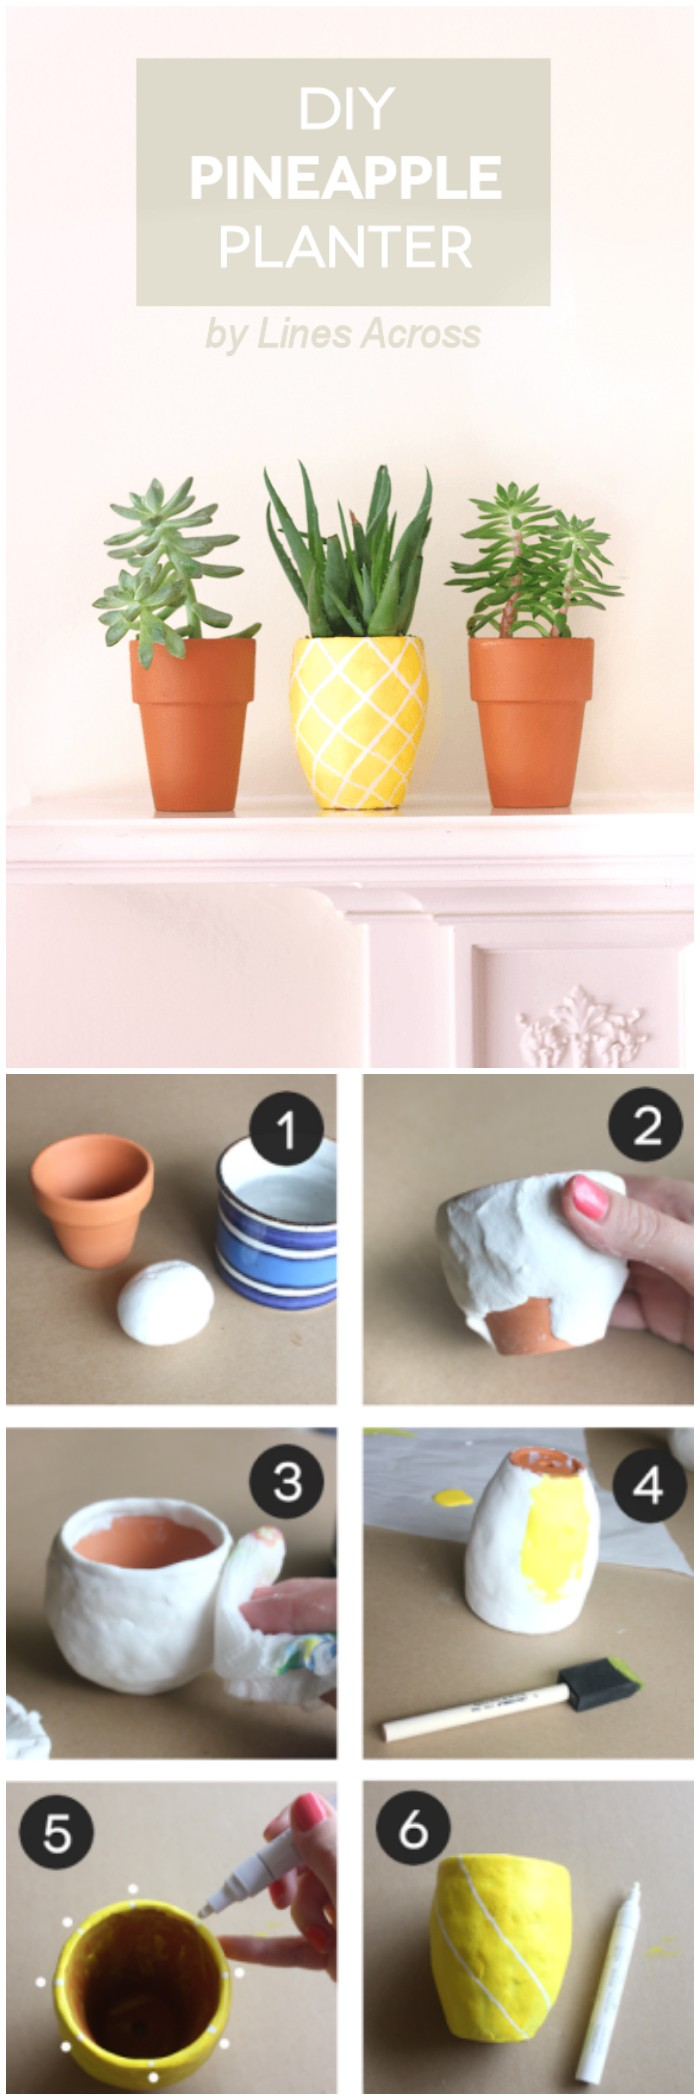 DIY Succulent Pineapple Planter Cheap DIY Projects For Your Home Decoration